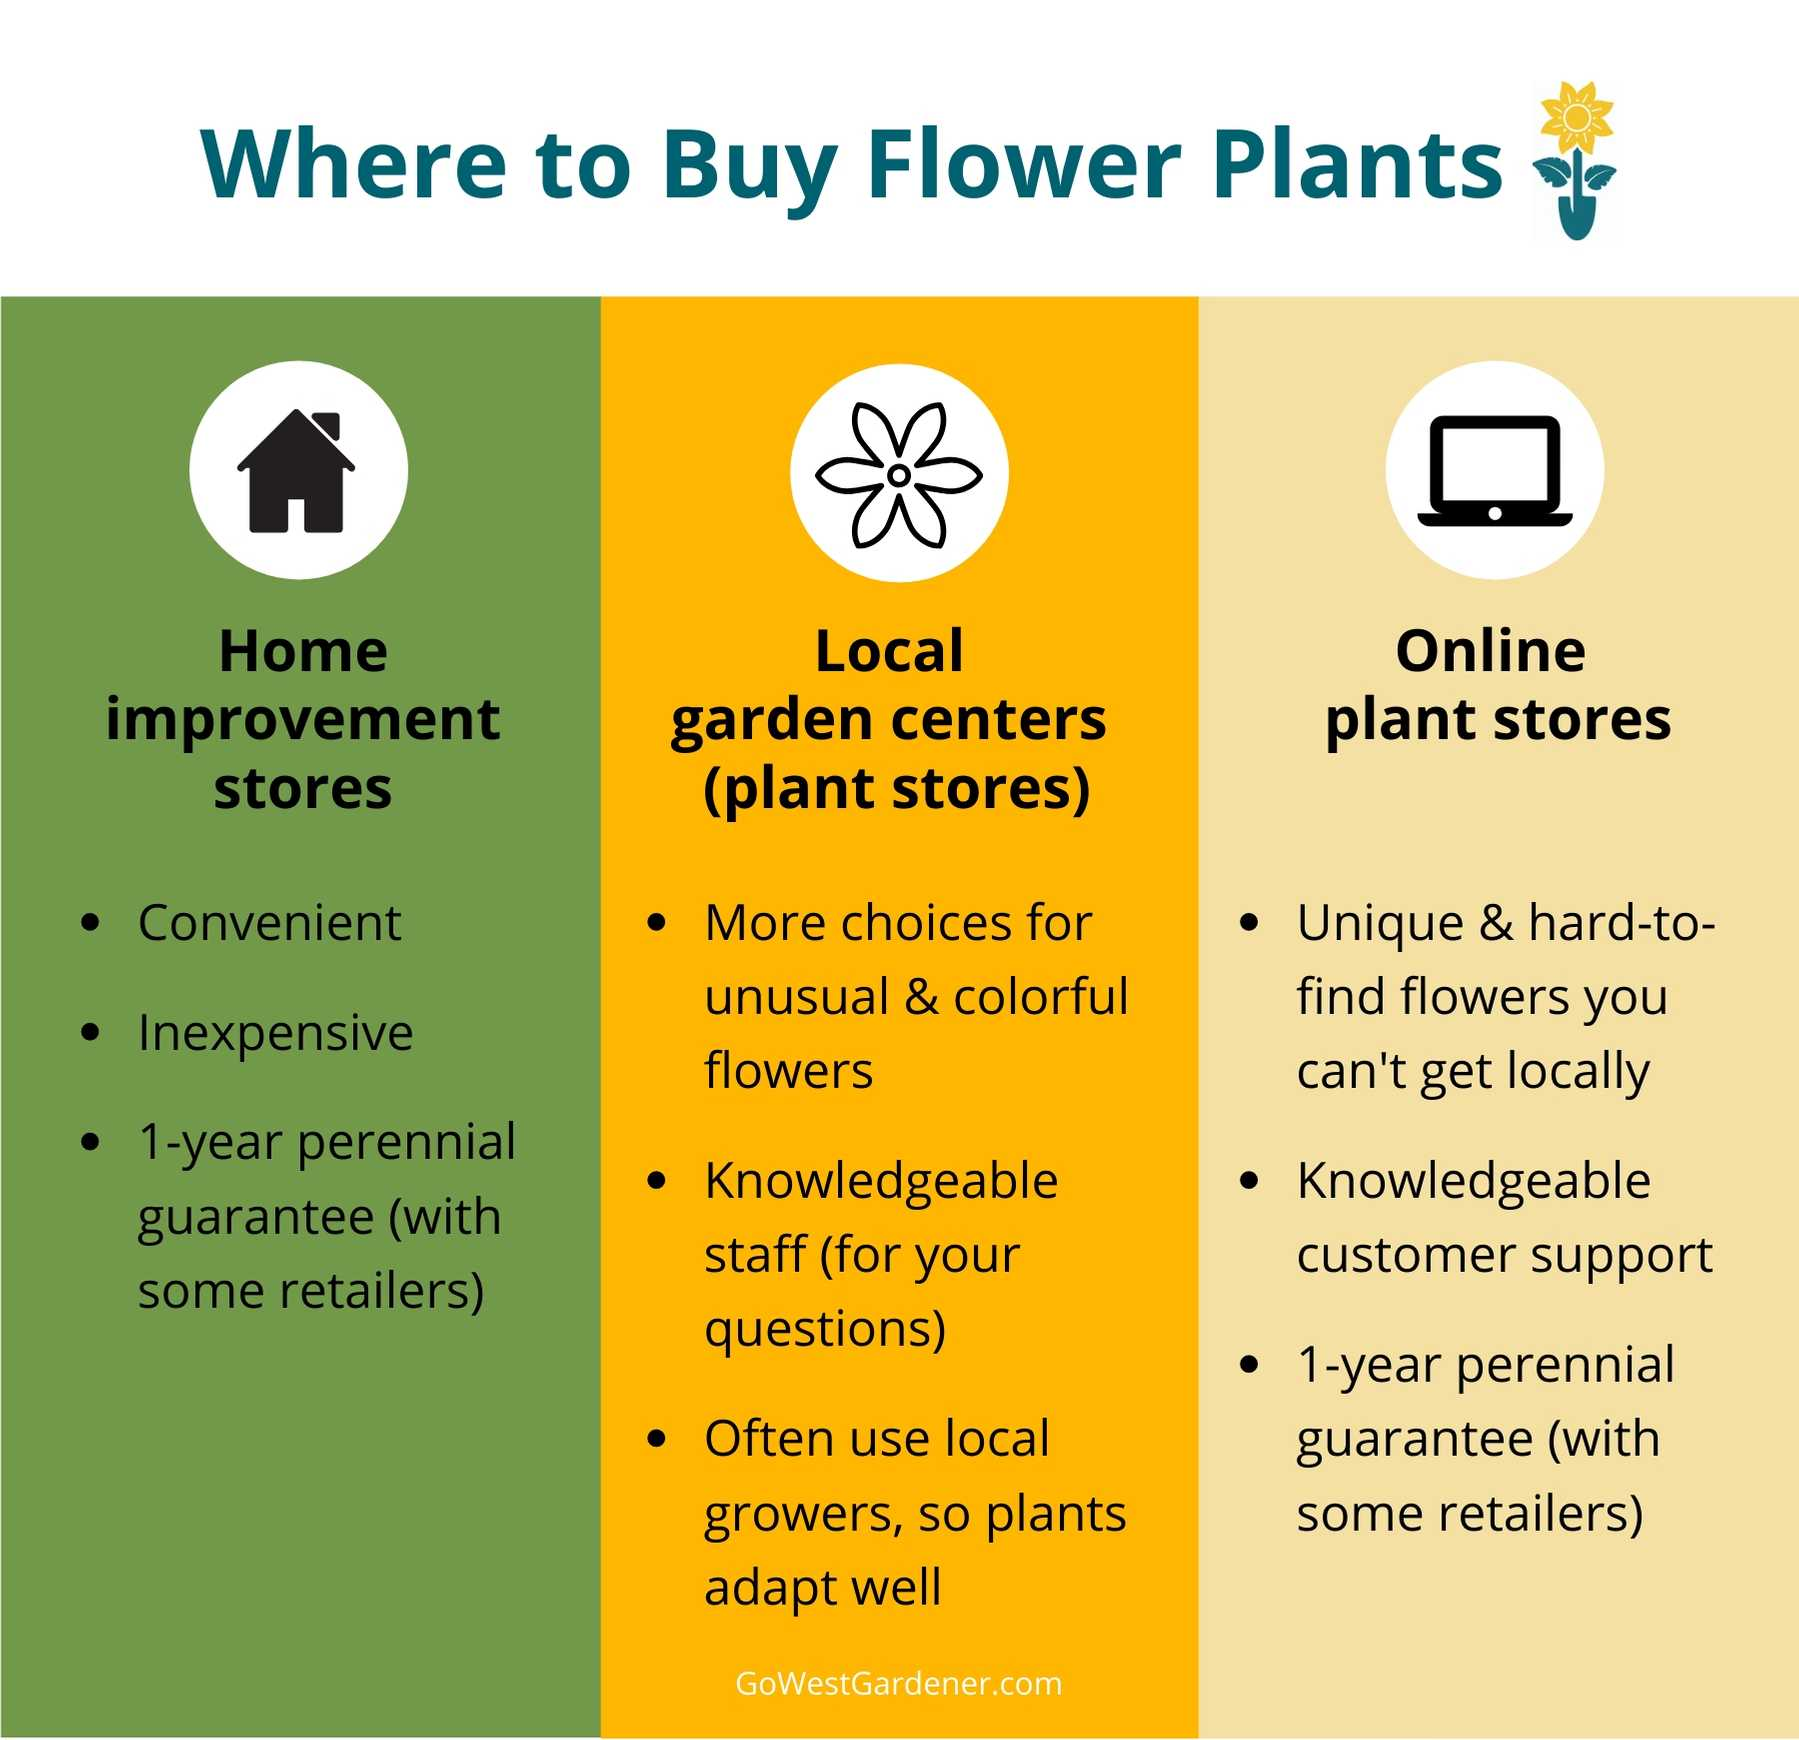 Infographic showing where to buy flower plants in Colorado: Comparing home improvement stores, local garden centers and nurseries, and online plant stores